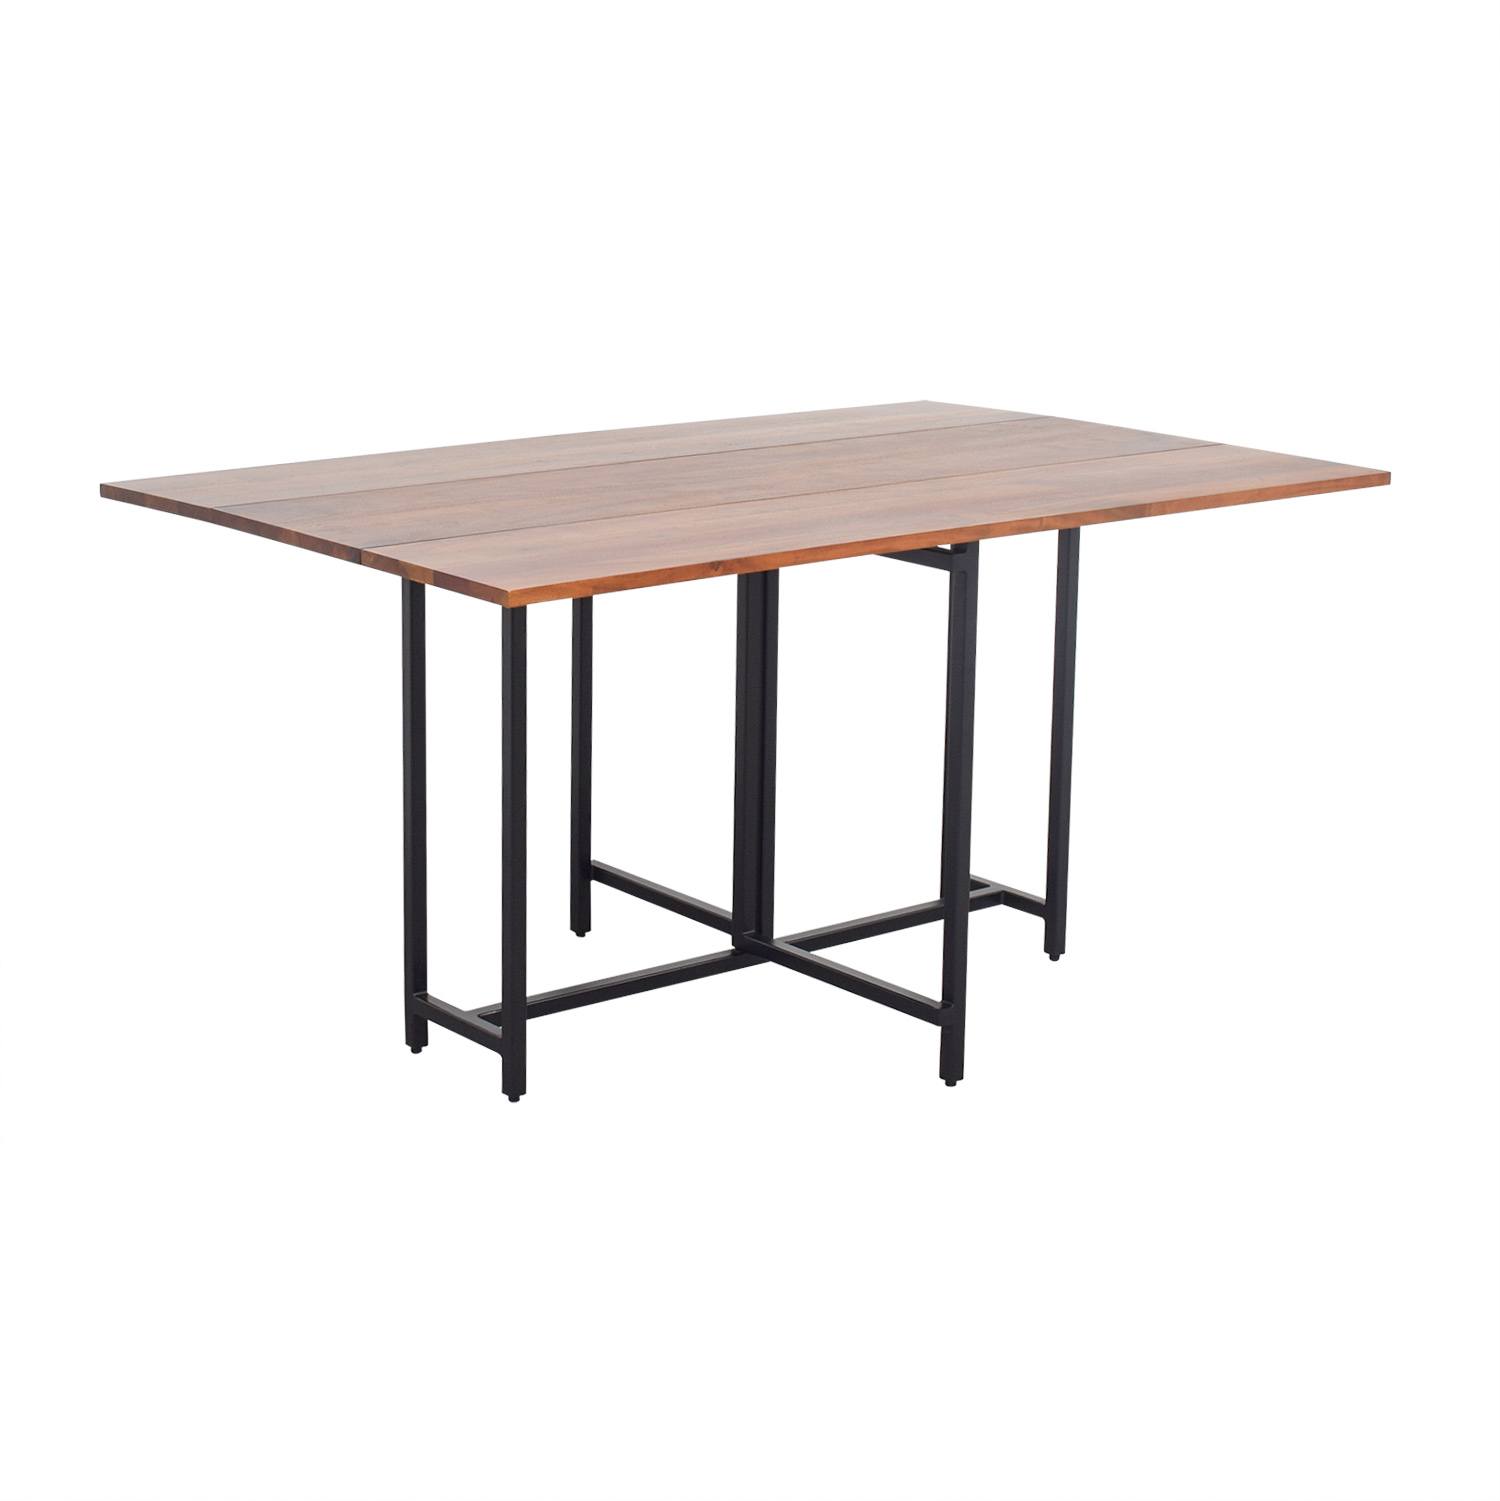 Crate & Barrel Crate & Barrel Origami Extendable Leaf Table for sale